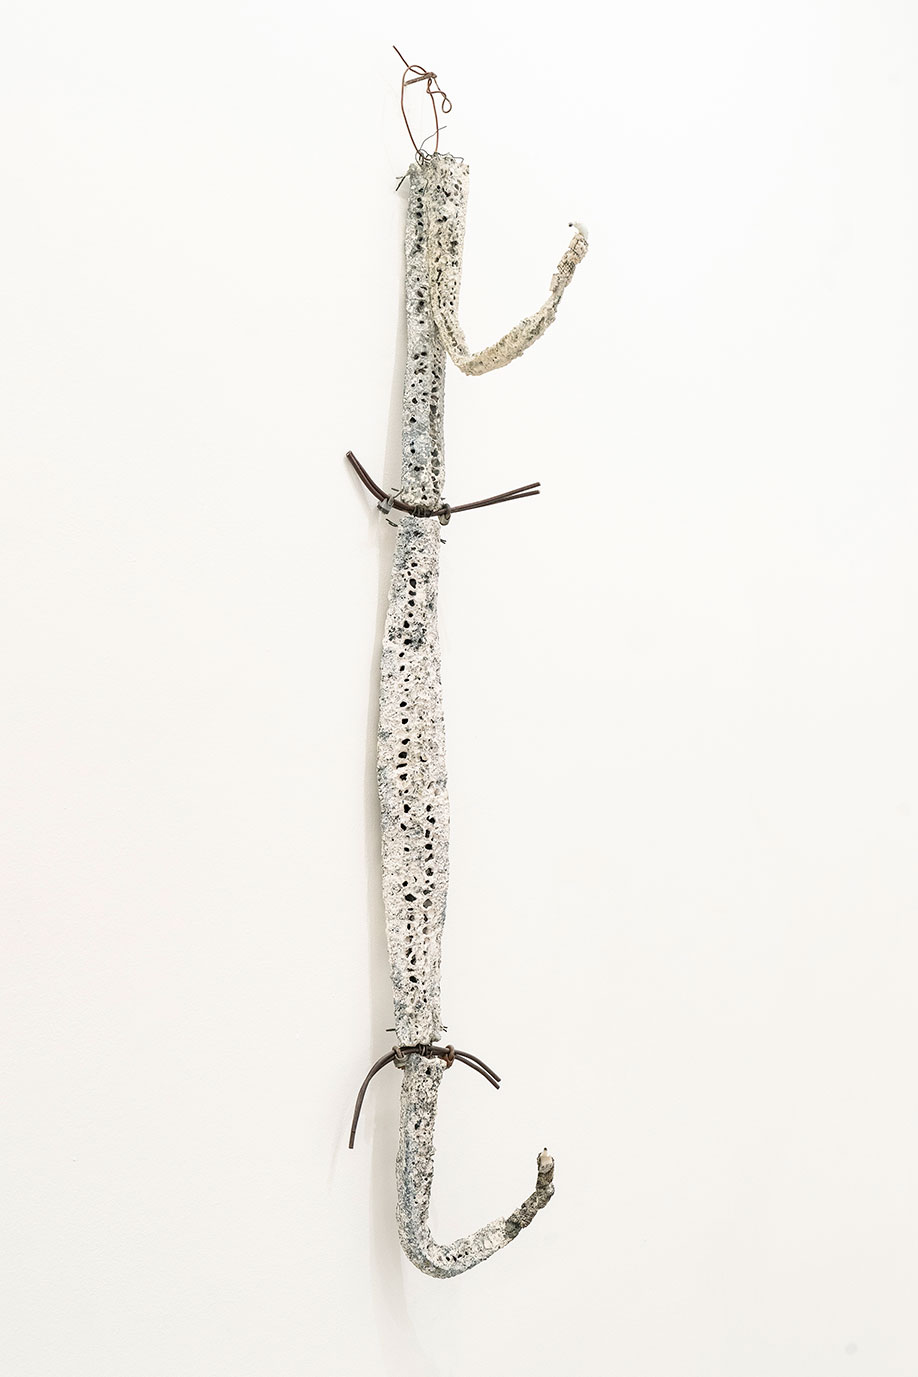 <b>Title:</b>Hook Figure<br /><b>Year:</b>1991<br /><b>Medium:</b>Sliced loofahs, cones, ceramic, shards, salvage electrical wire and metal cage<br /><b>Size:</b>141 cm